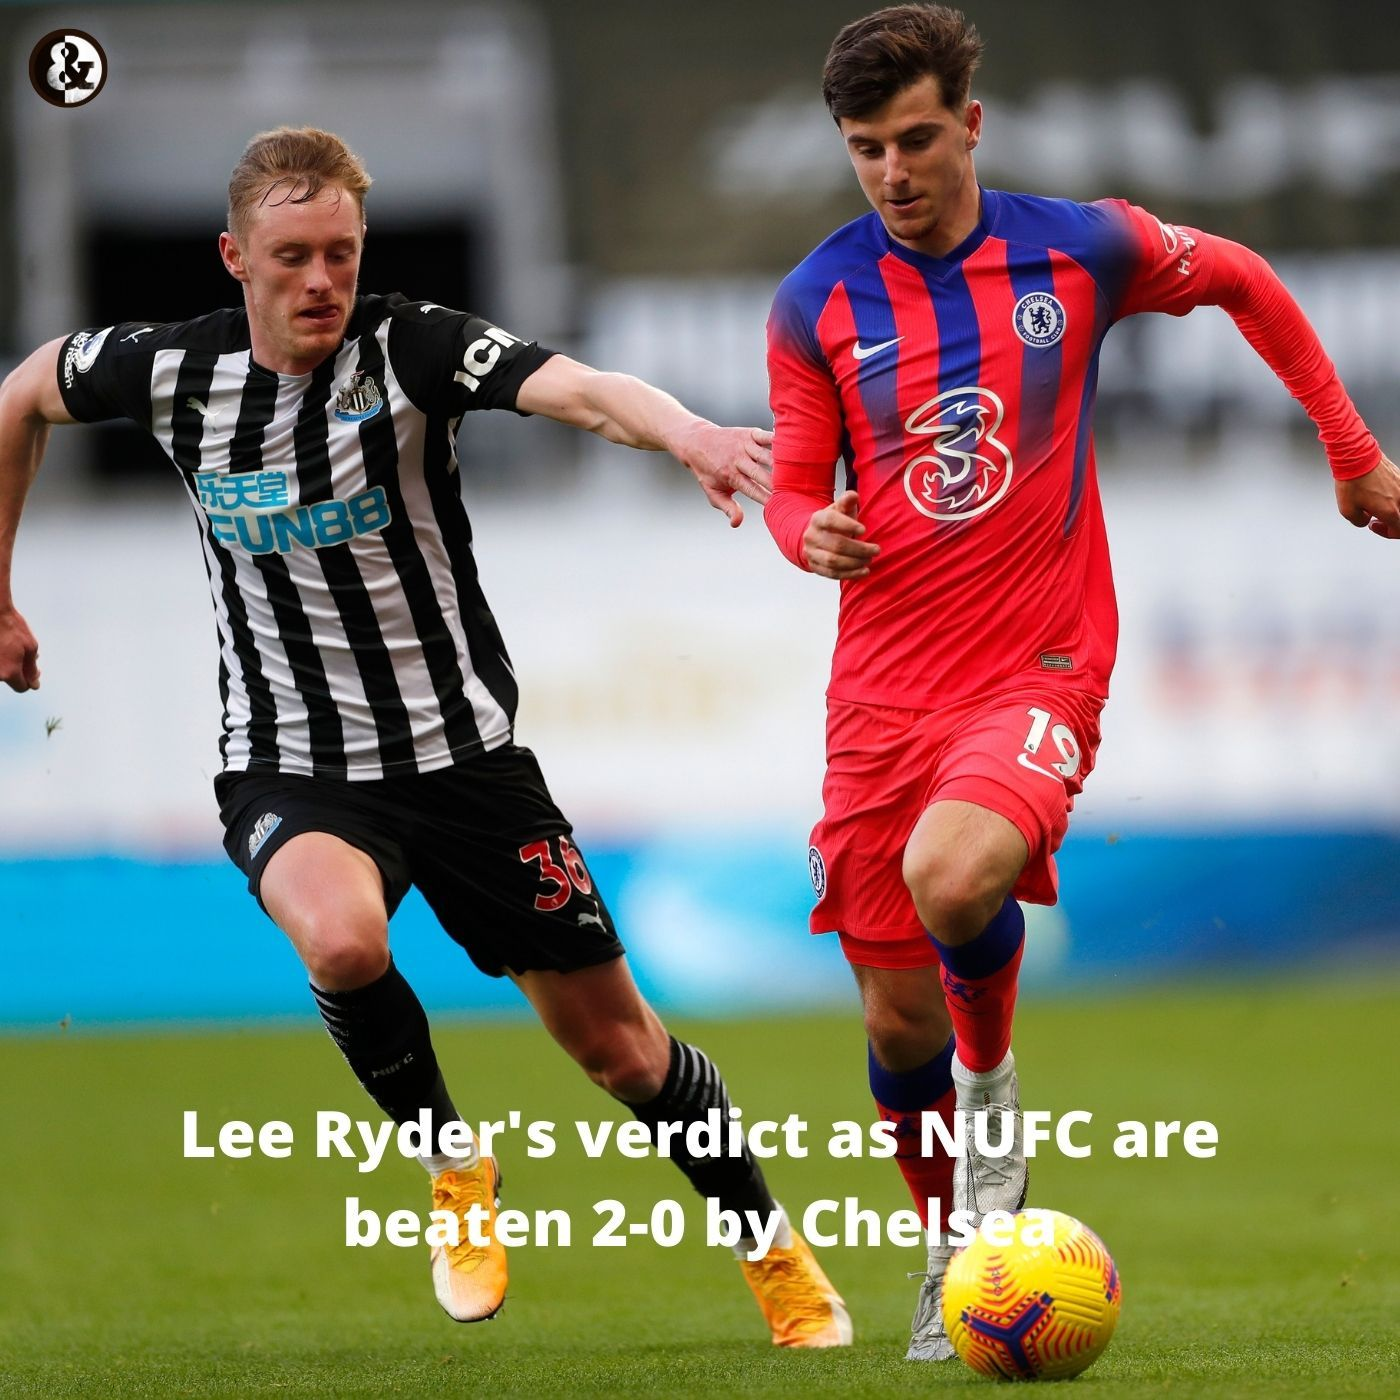 'It's a big problem' - Lee Ryder's verdict as NUFC are beaten 2-0 by Chelsea